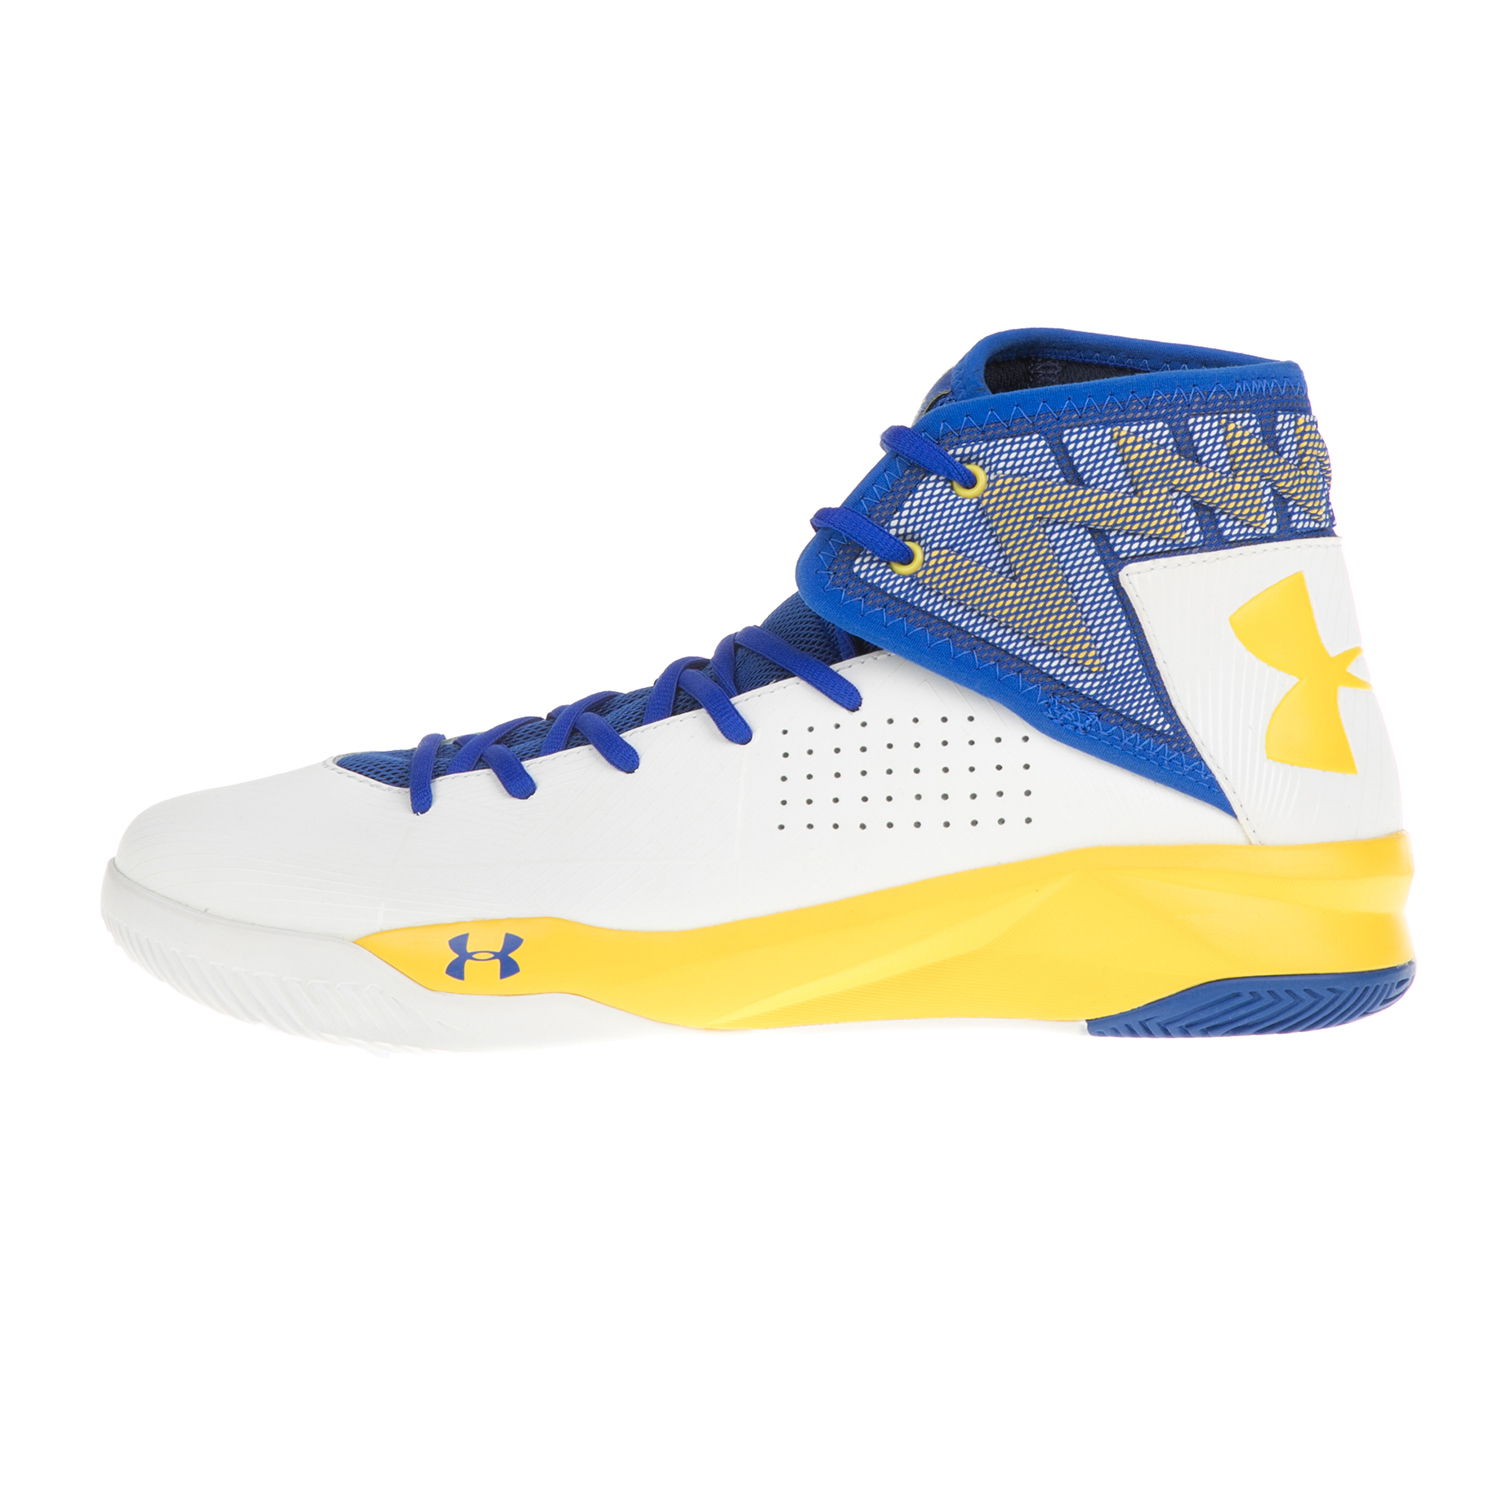 UNDER ARMOUR – Ανδρικά παπούτσια μπάσκετ UA Rocket 2